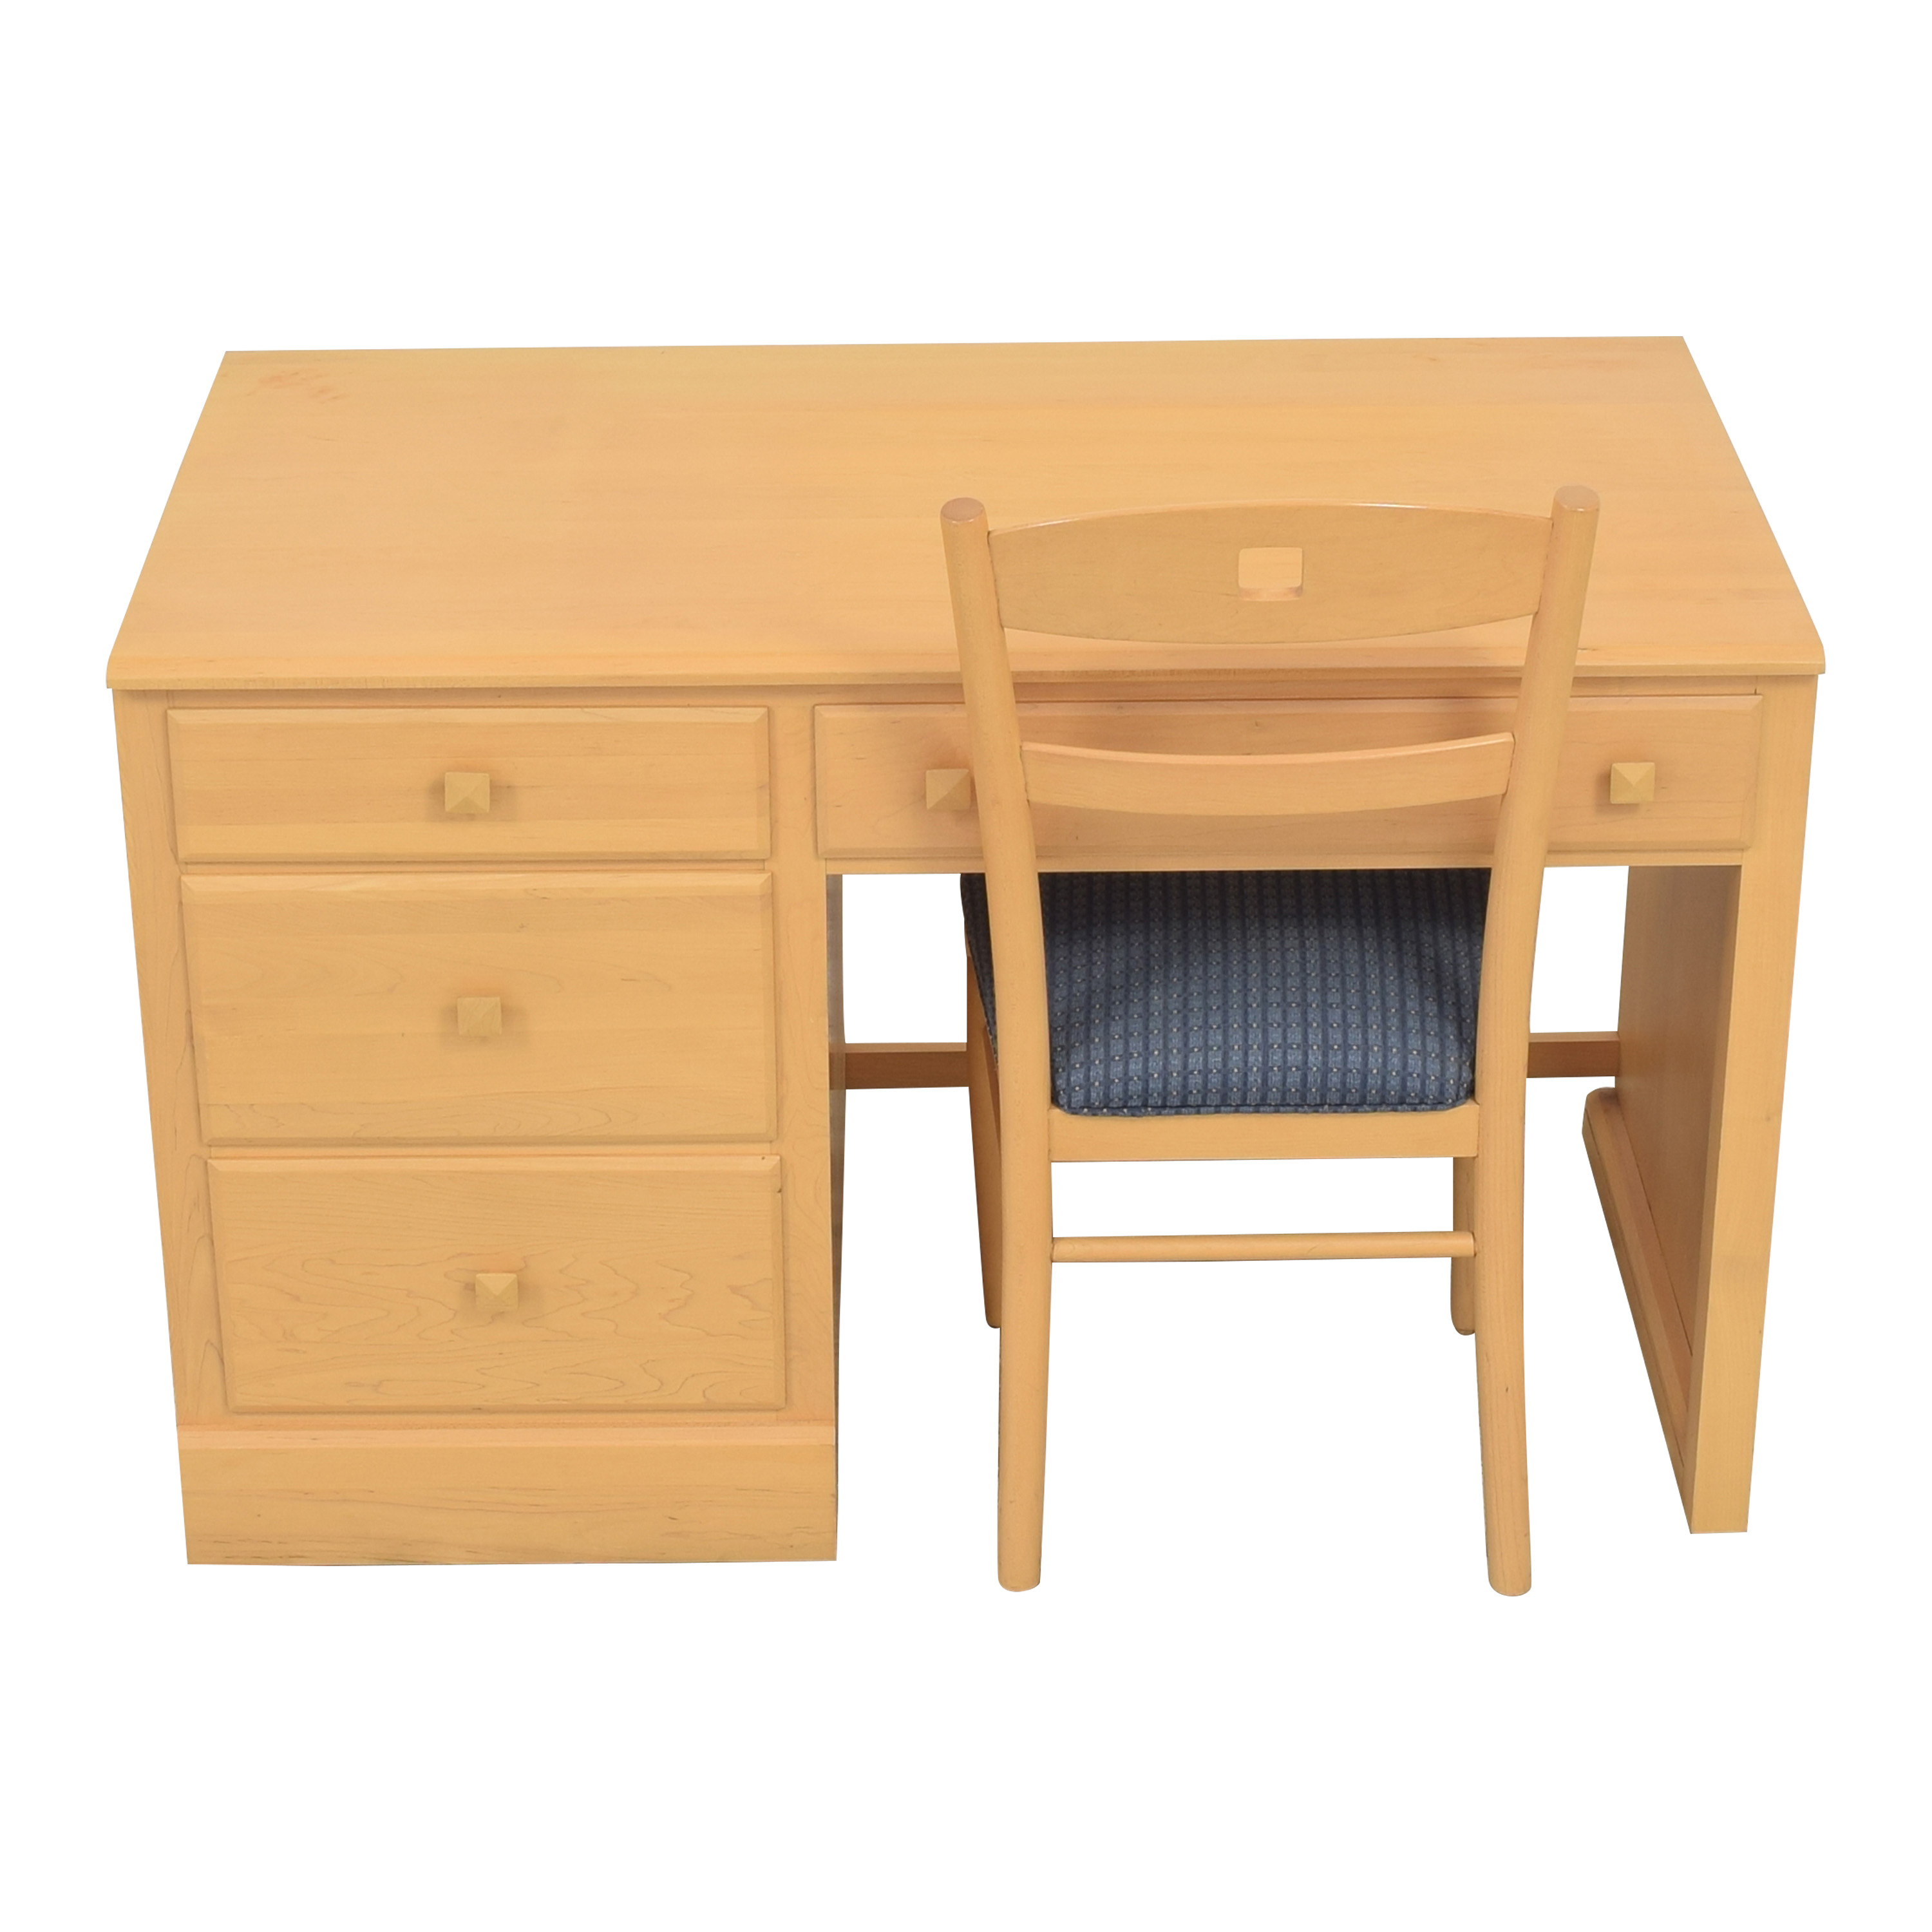 Ethan Allen Ethan Allen American Dimensions Desk and Chair coupon